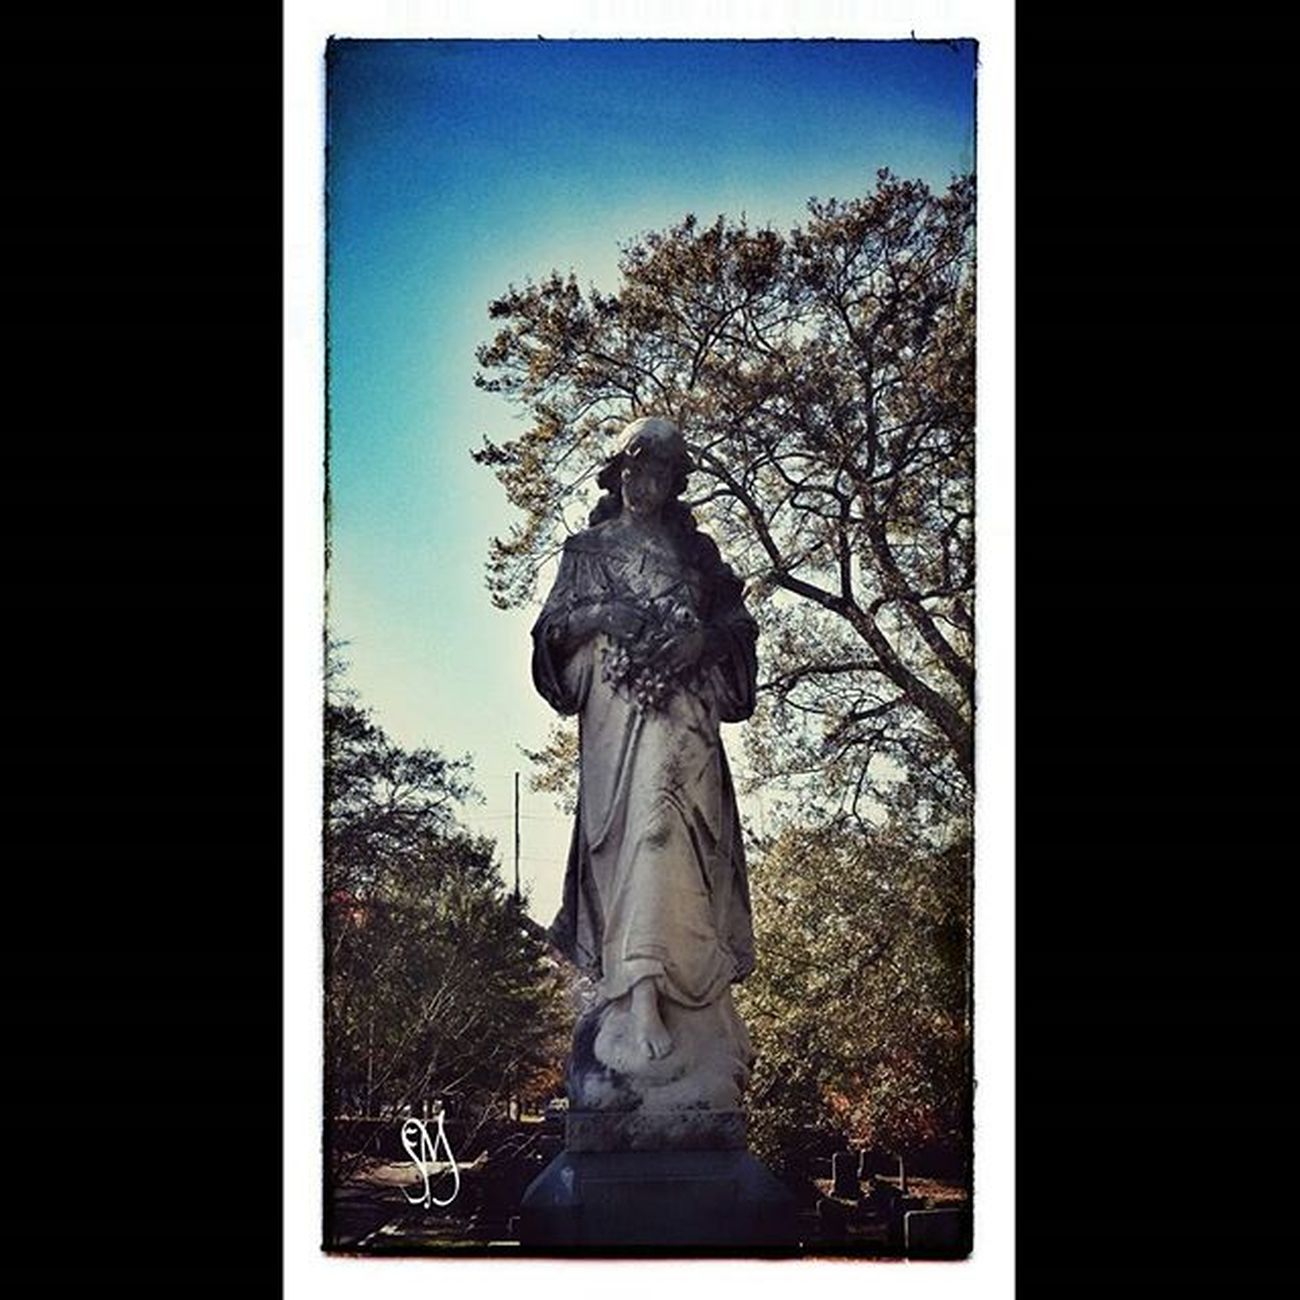 Oaklandcemetery History Exploregeorgia Ig_captures Ig_photolove Ig_brilliant Ig_photooftheday GuardianAngel Ig_shutterbugs Ig_recommend